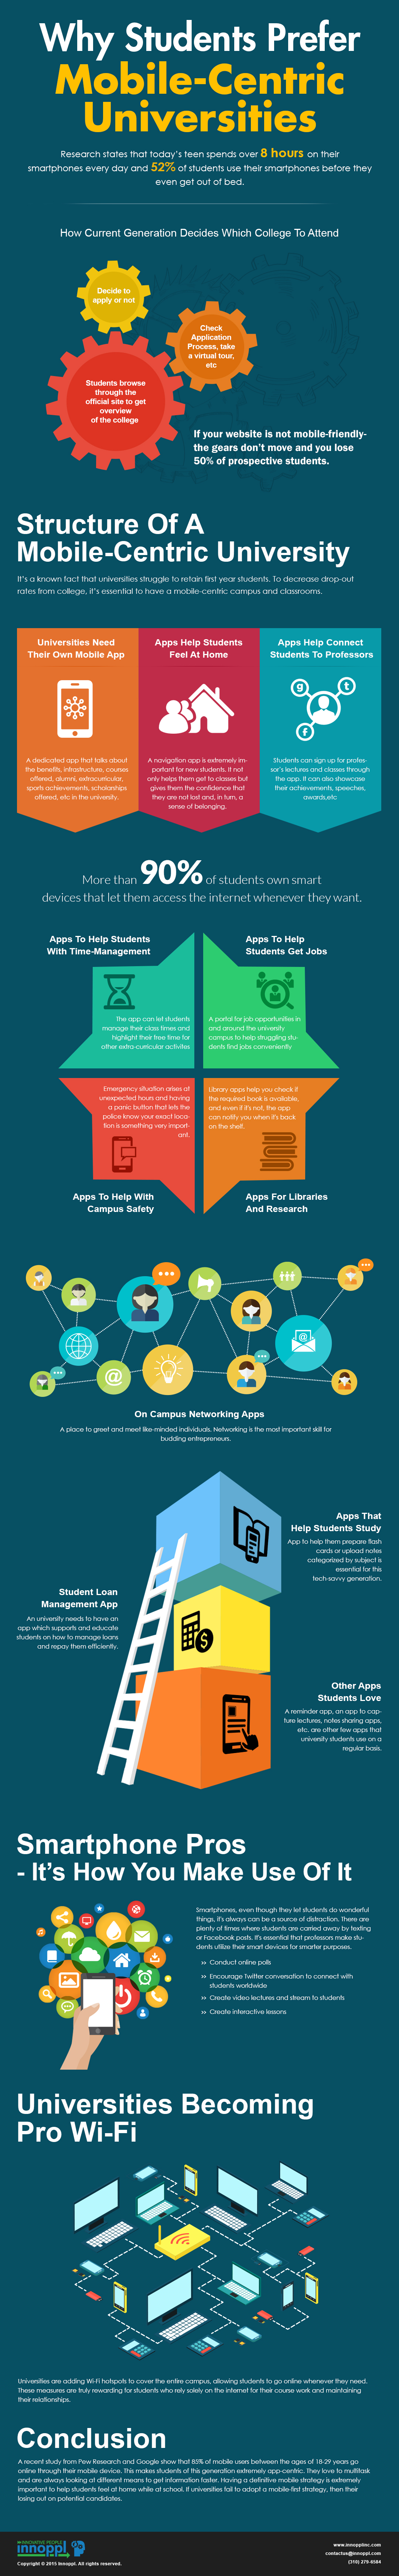 Why Students Prefer Mobile-Centric Universities Infographic